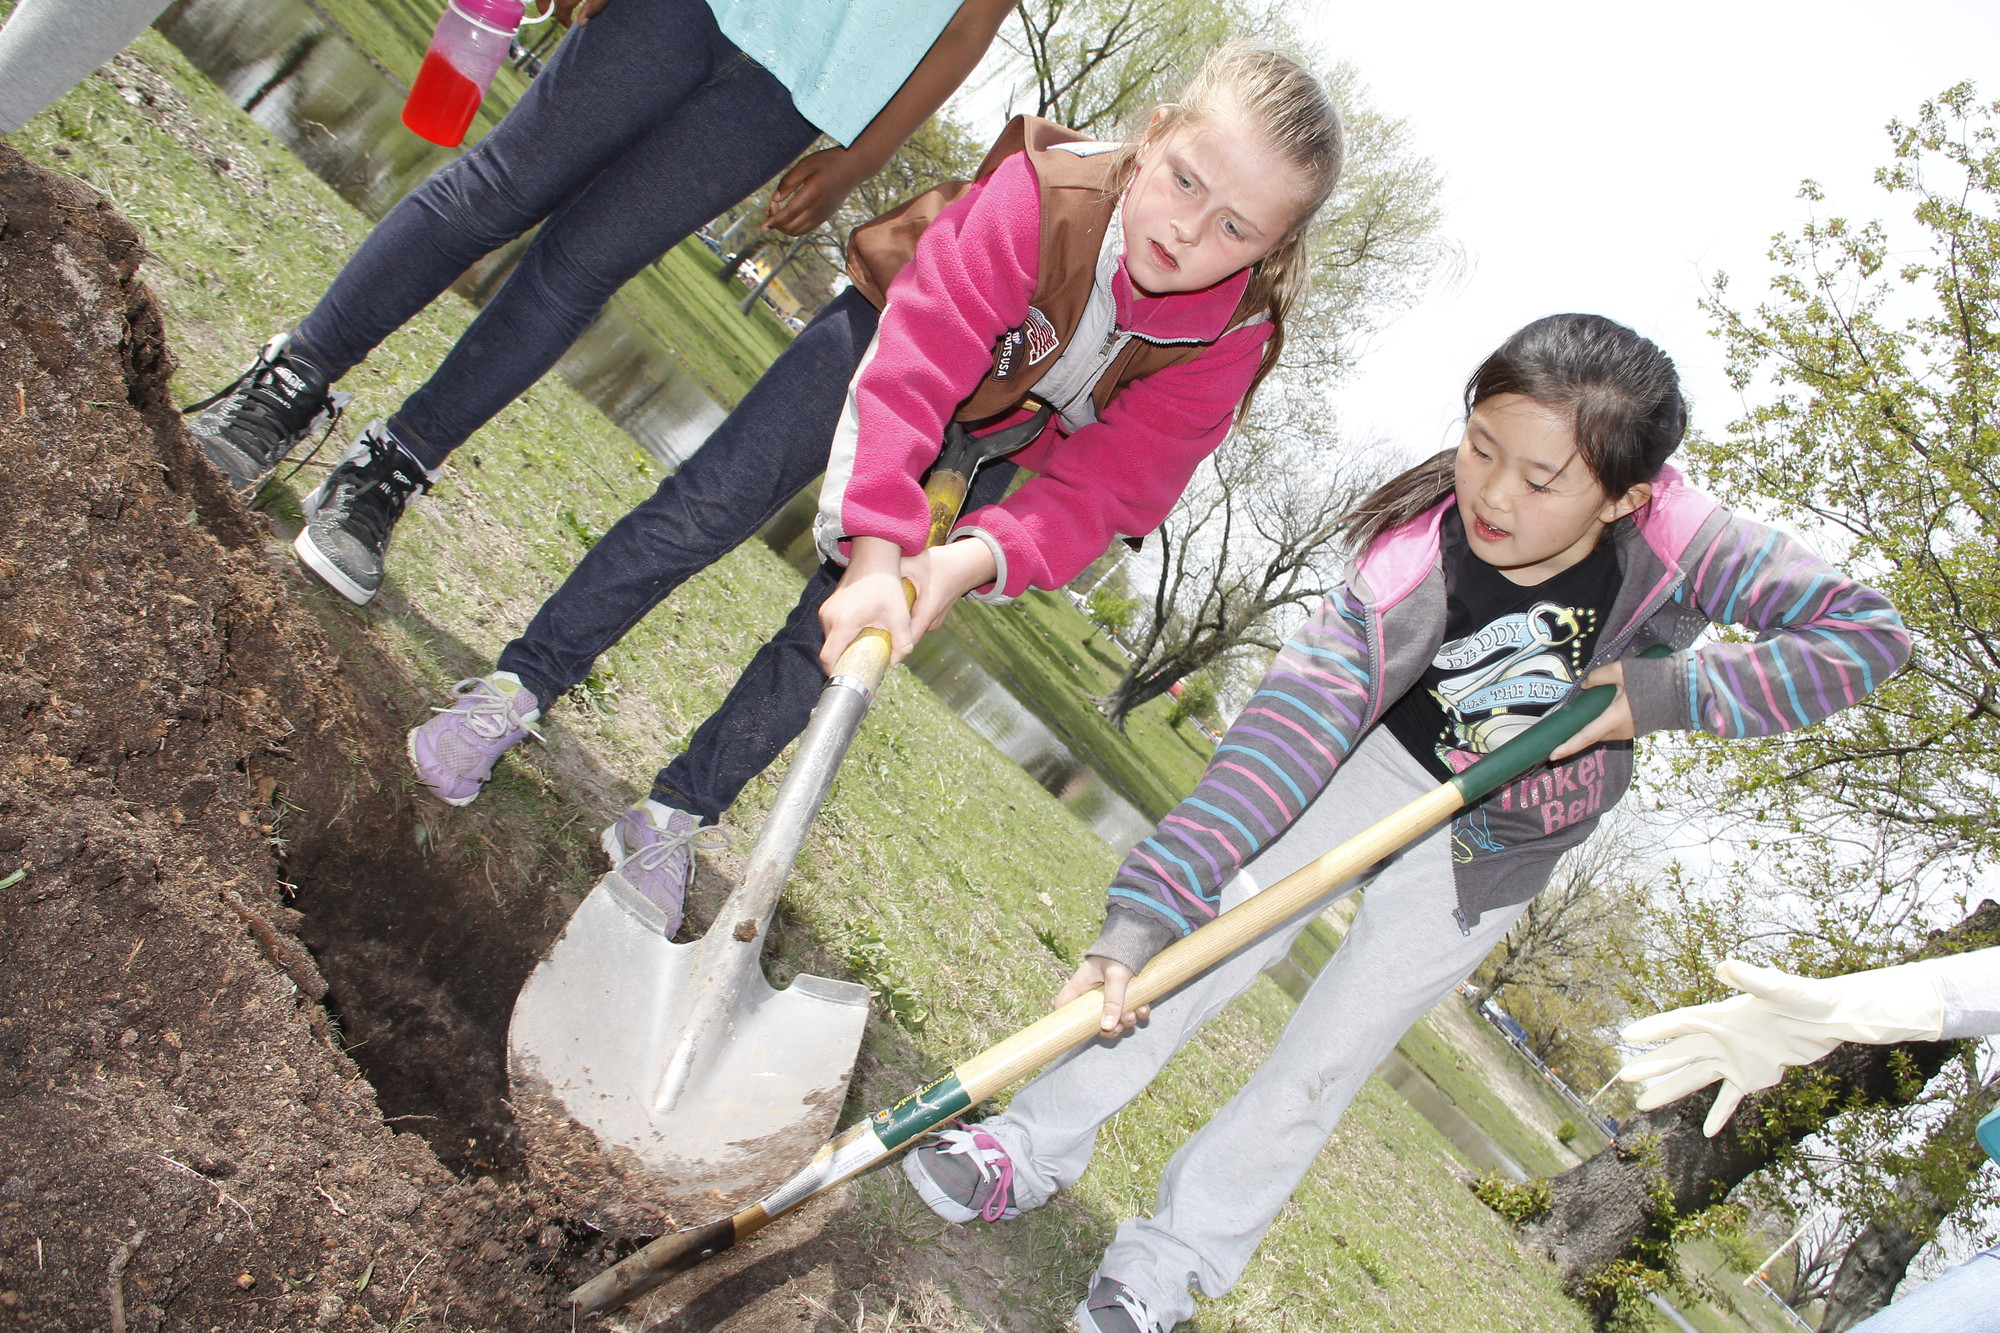 Fiona Casucci and Madeline Yeh from Brownie Troop 2073 helped dig the hole where a new tree will be planted.